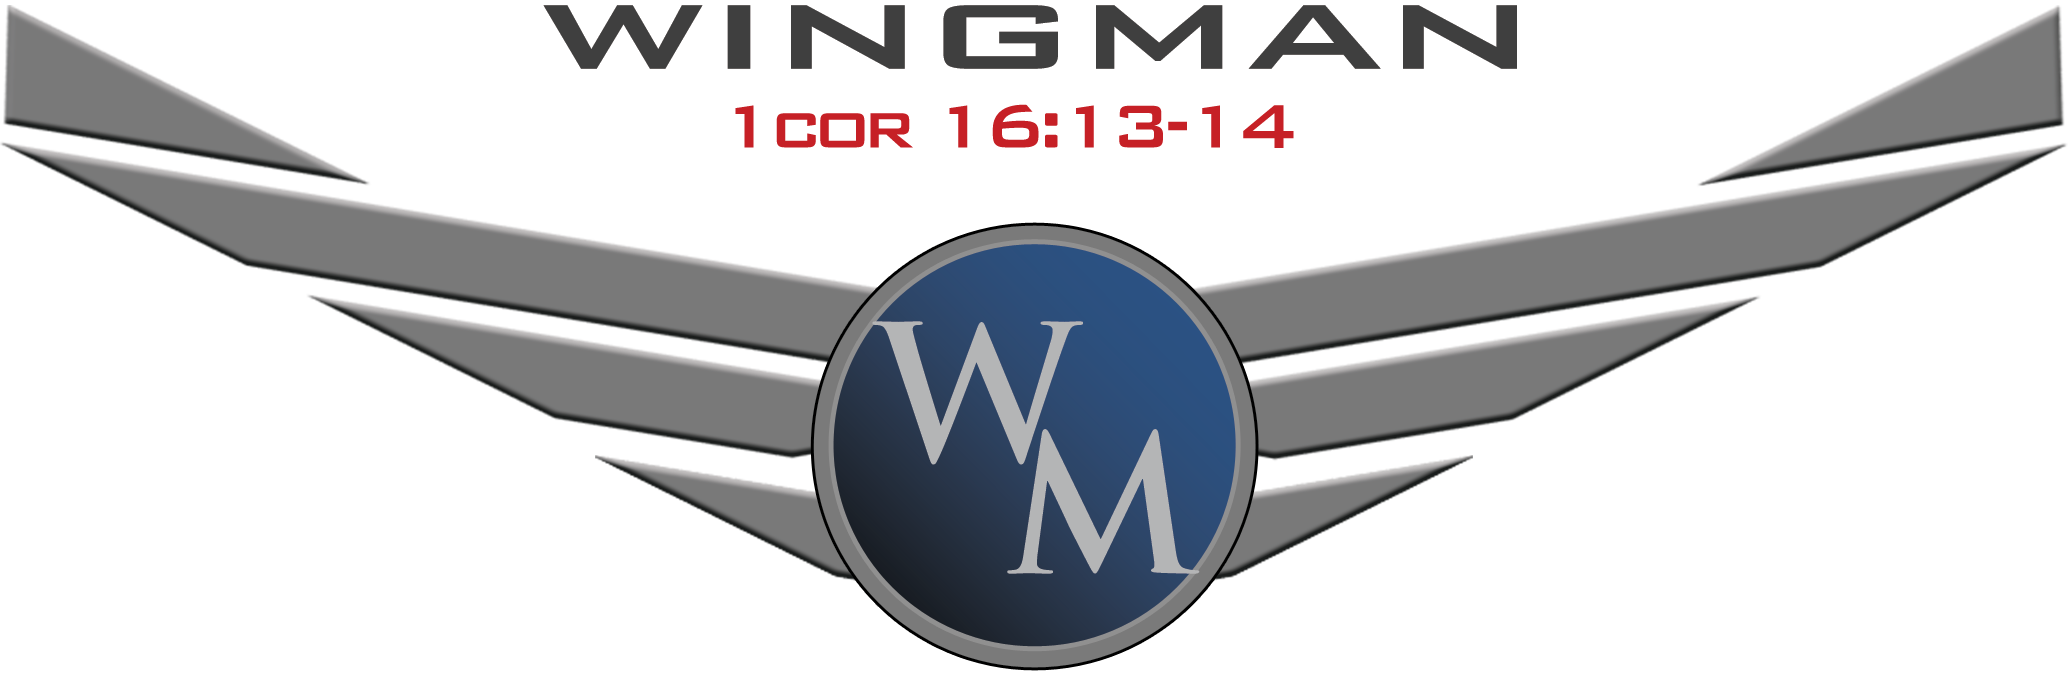 Wingman_Logo_Final-2.png